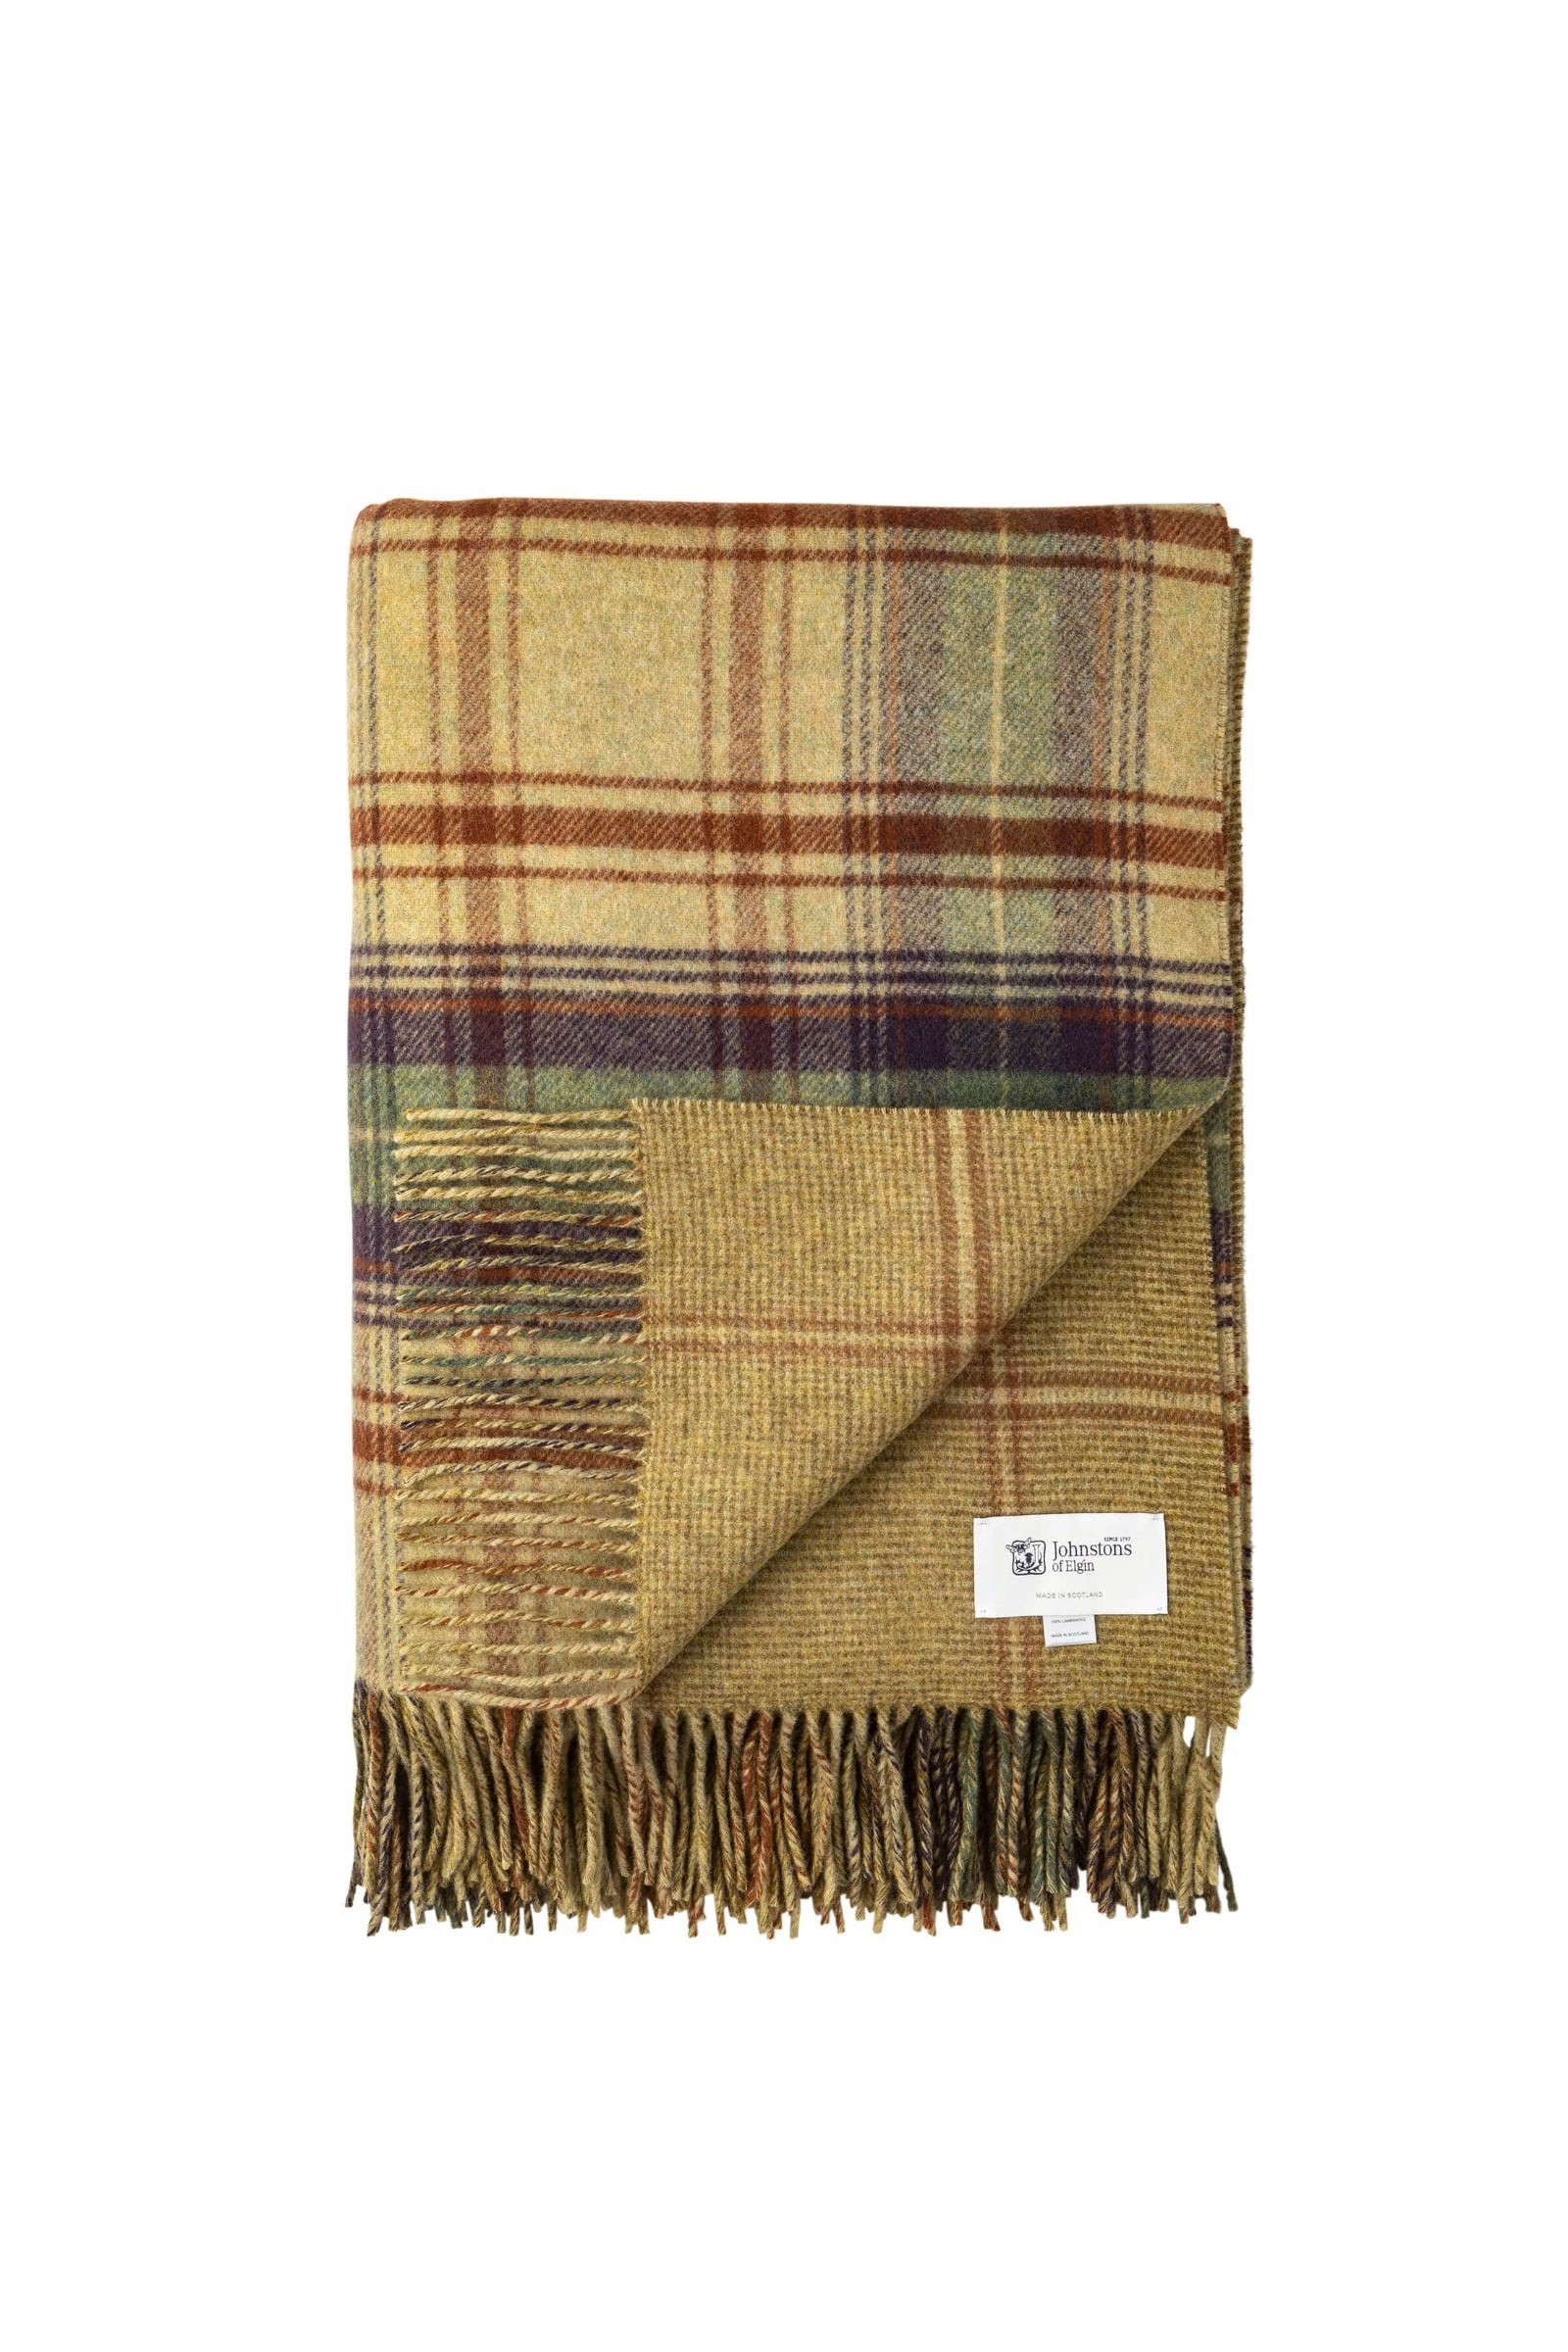 JOHNSTONS OF ELGIN LARGE CHECK / WARP HAIRLINE LAMBSWOOL WOVEN THROW